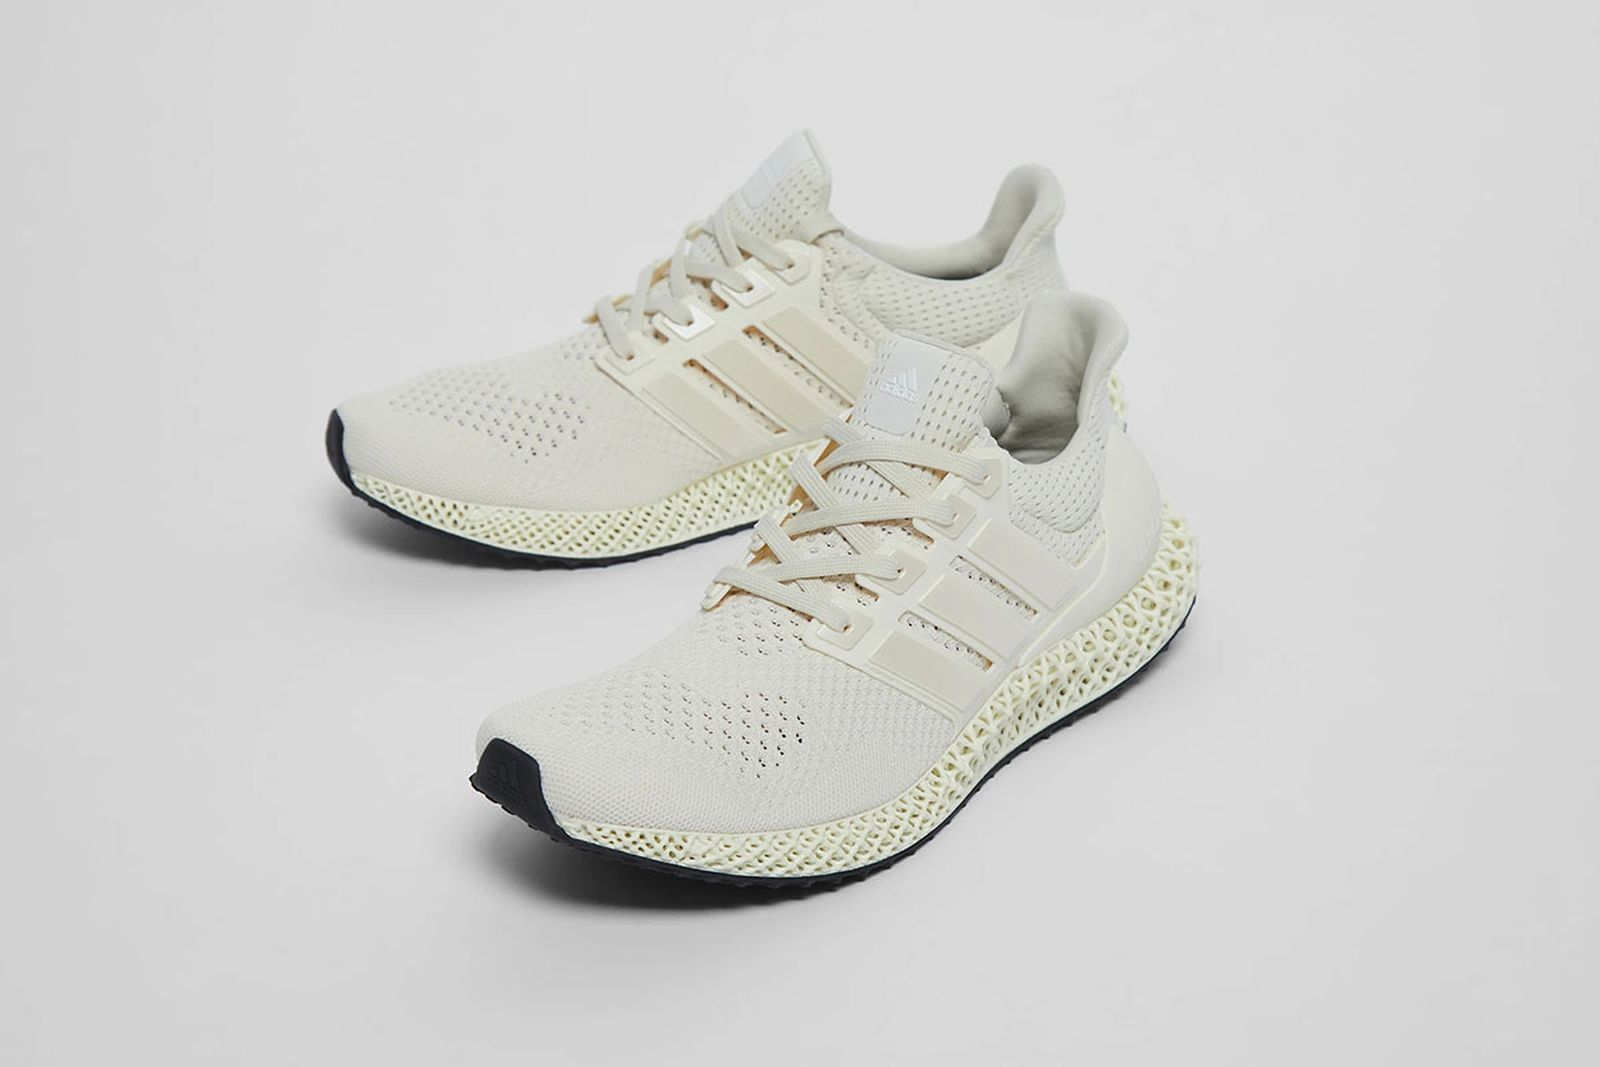 adidas-ultra-4d-triple-black-white-release-date-price-01